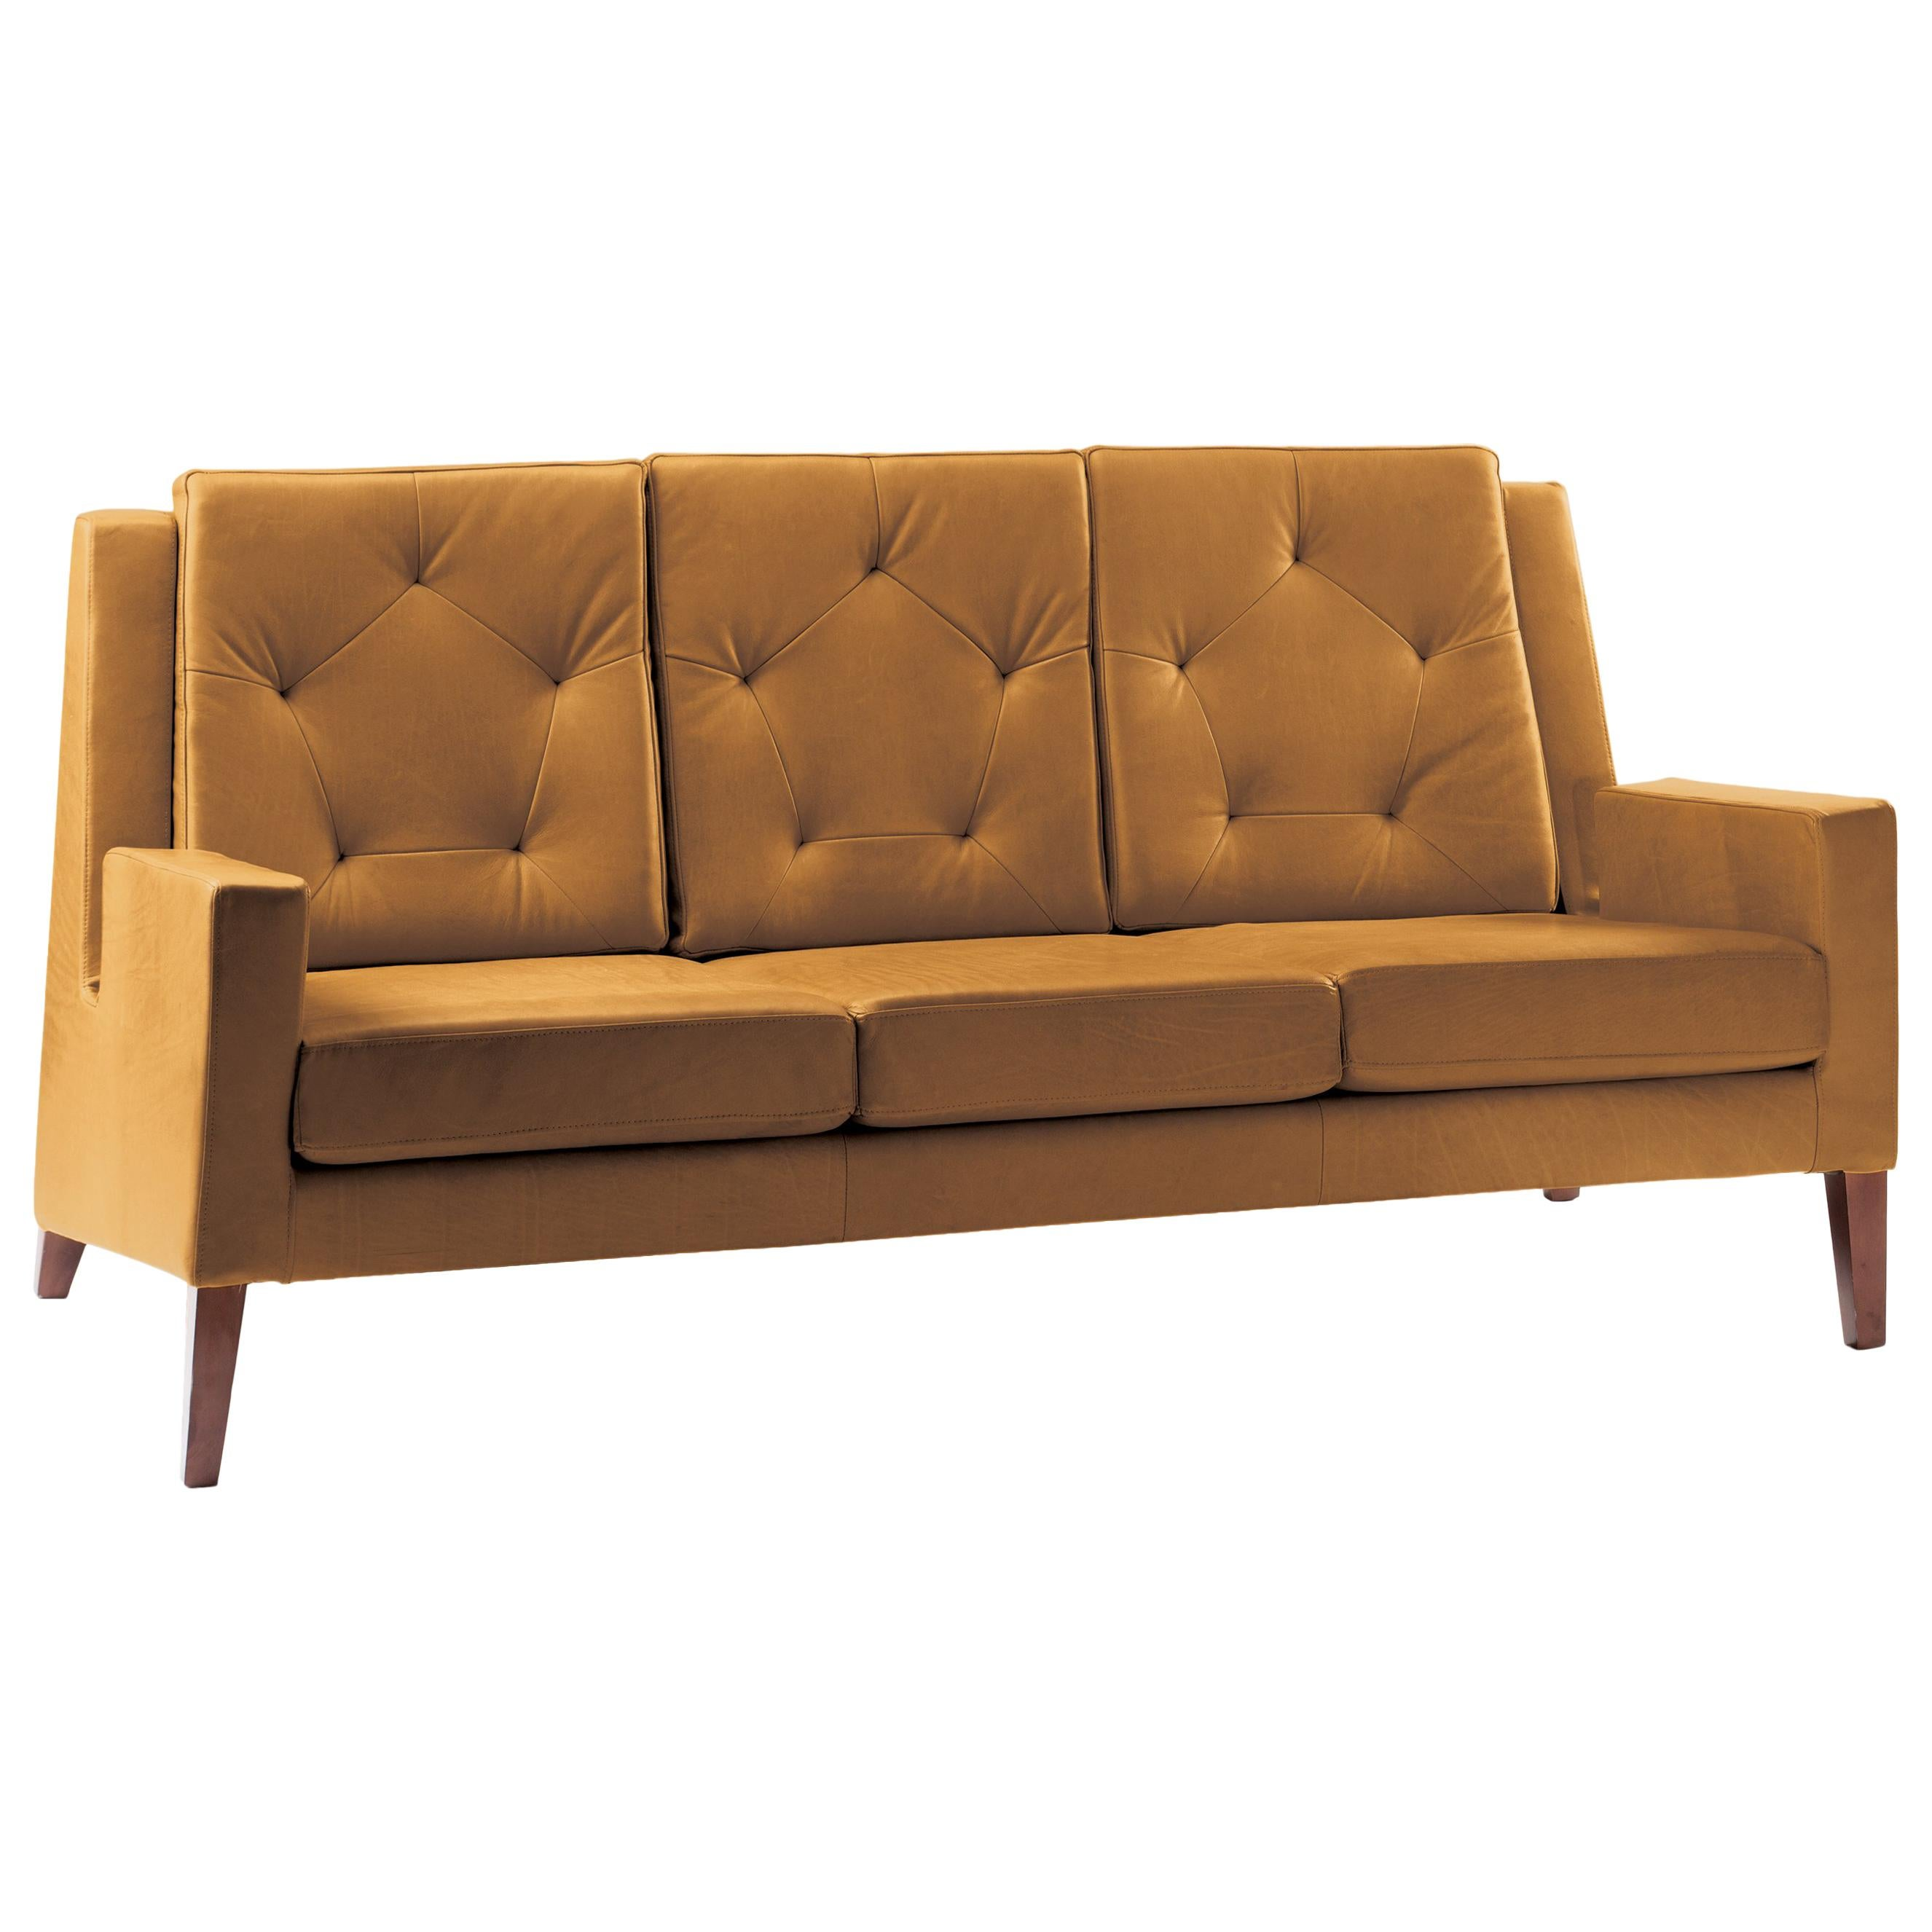 Kanapee Möbel Beech Sofas 237 For Sale At 1stdibs Page 2